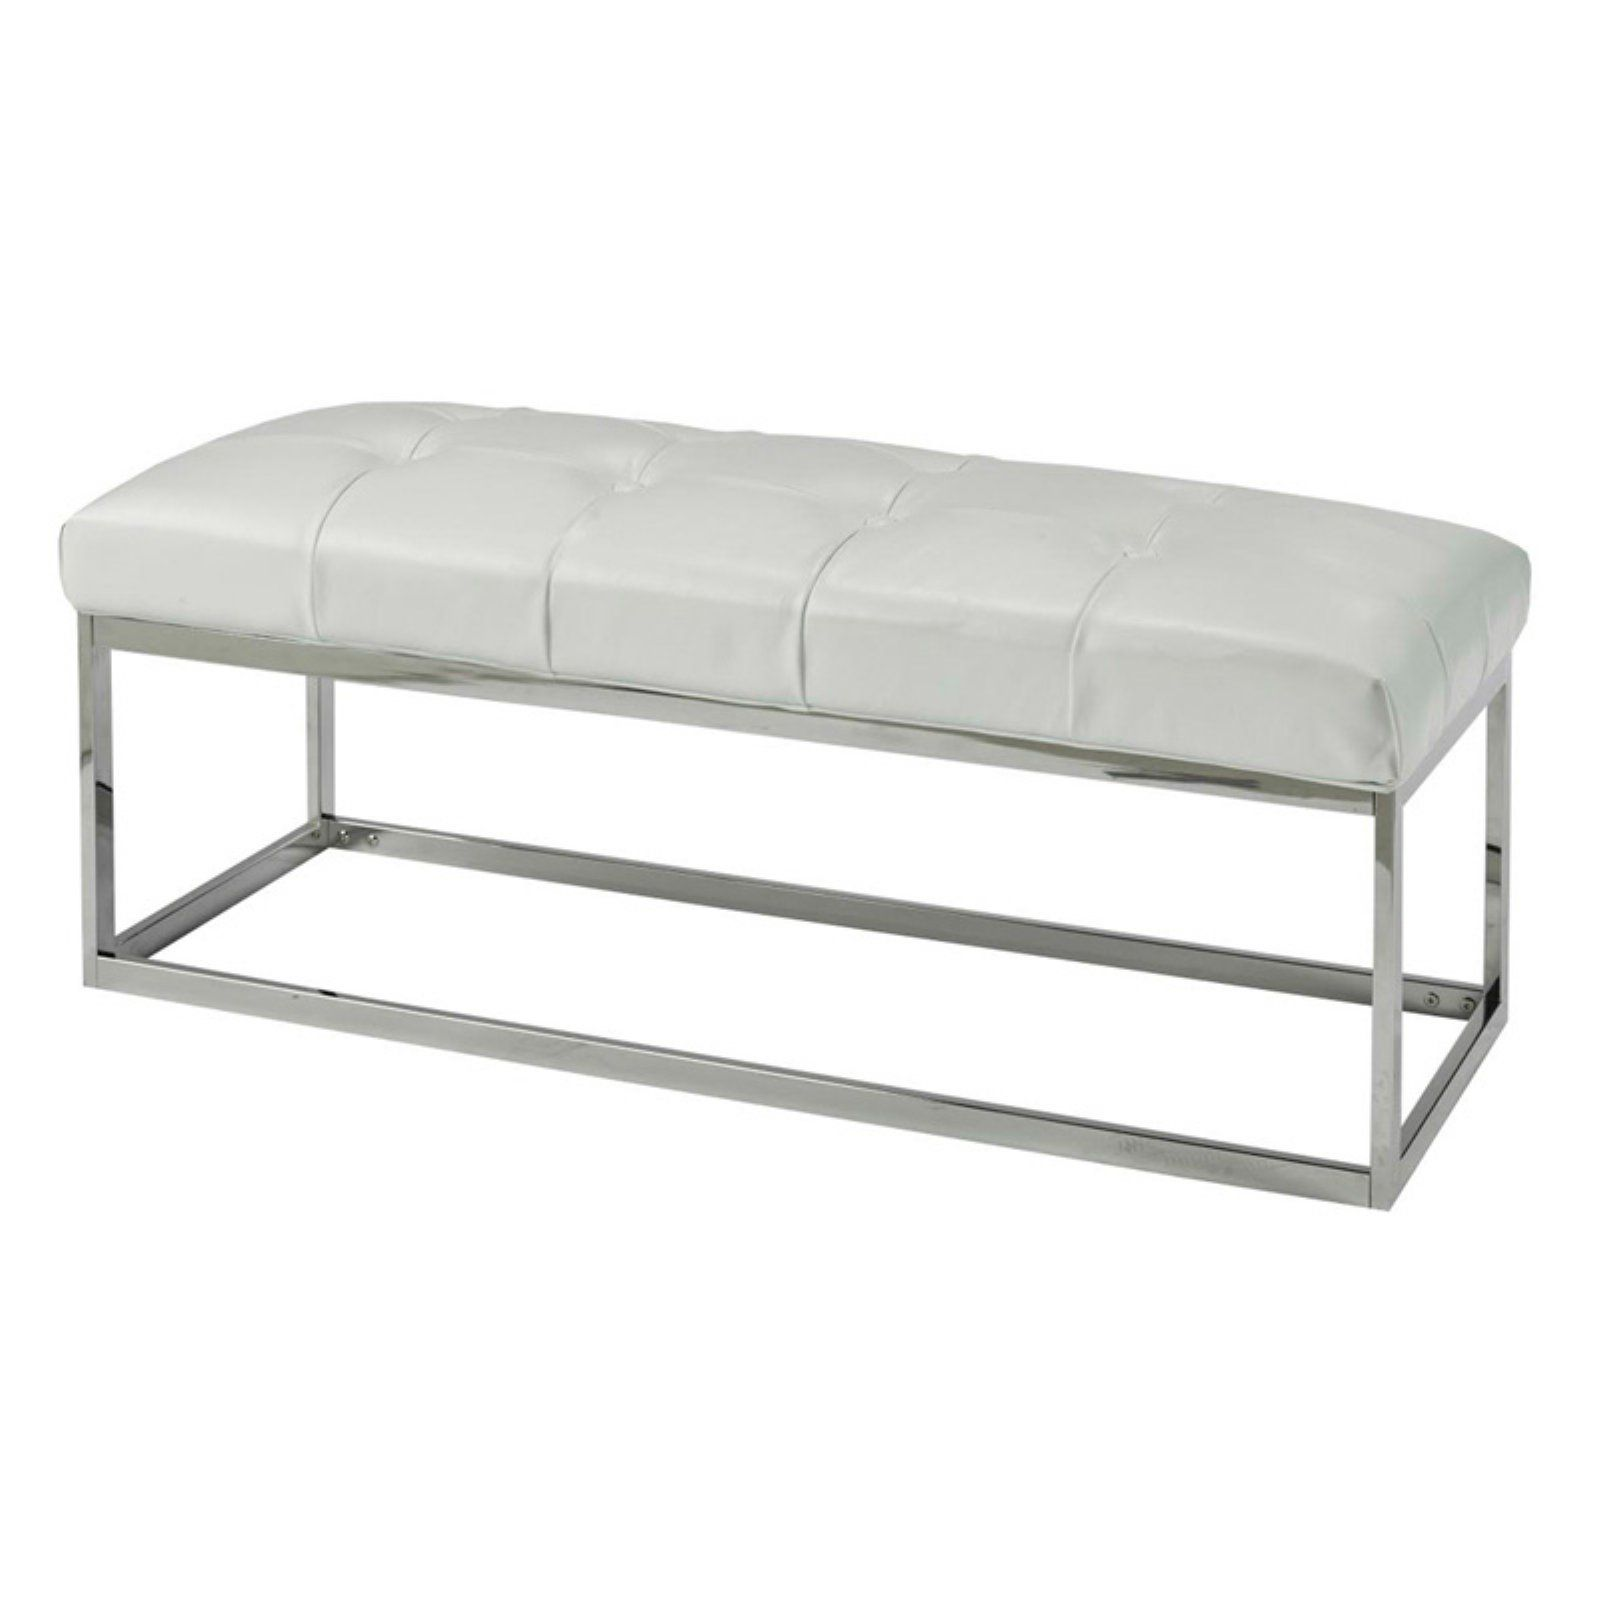 Uptown Club Small Spruce Bench White Leather Bench Upholstered